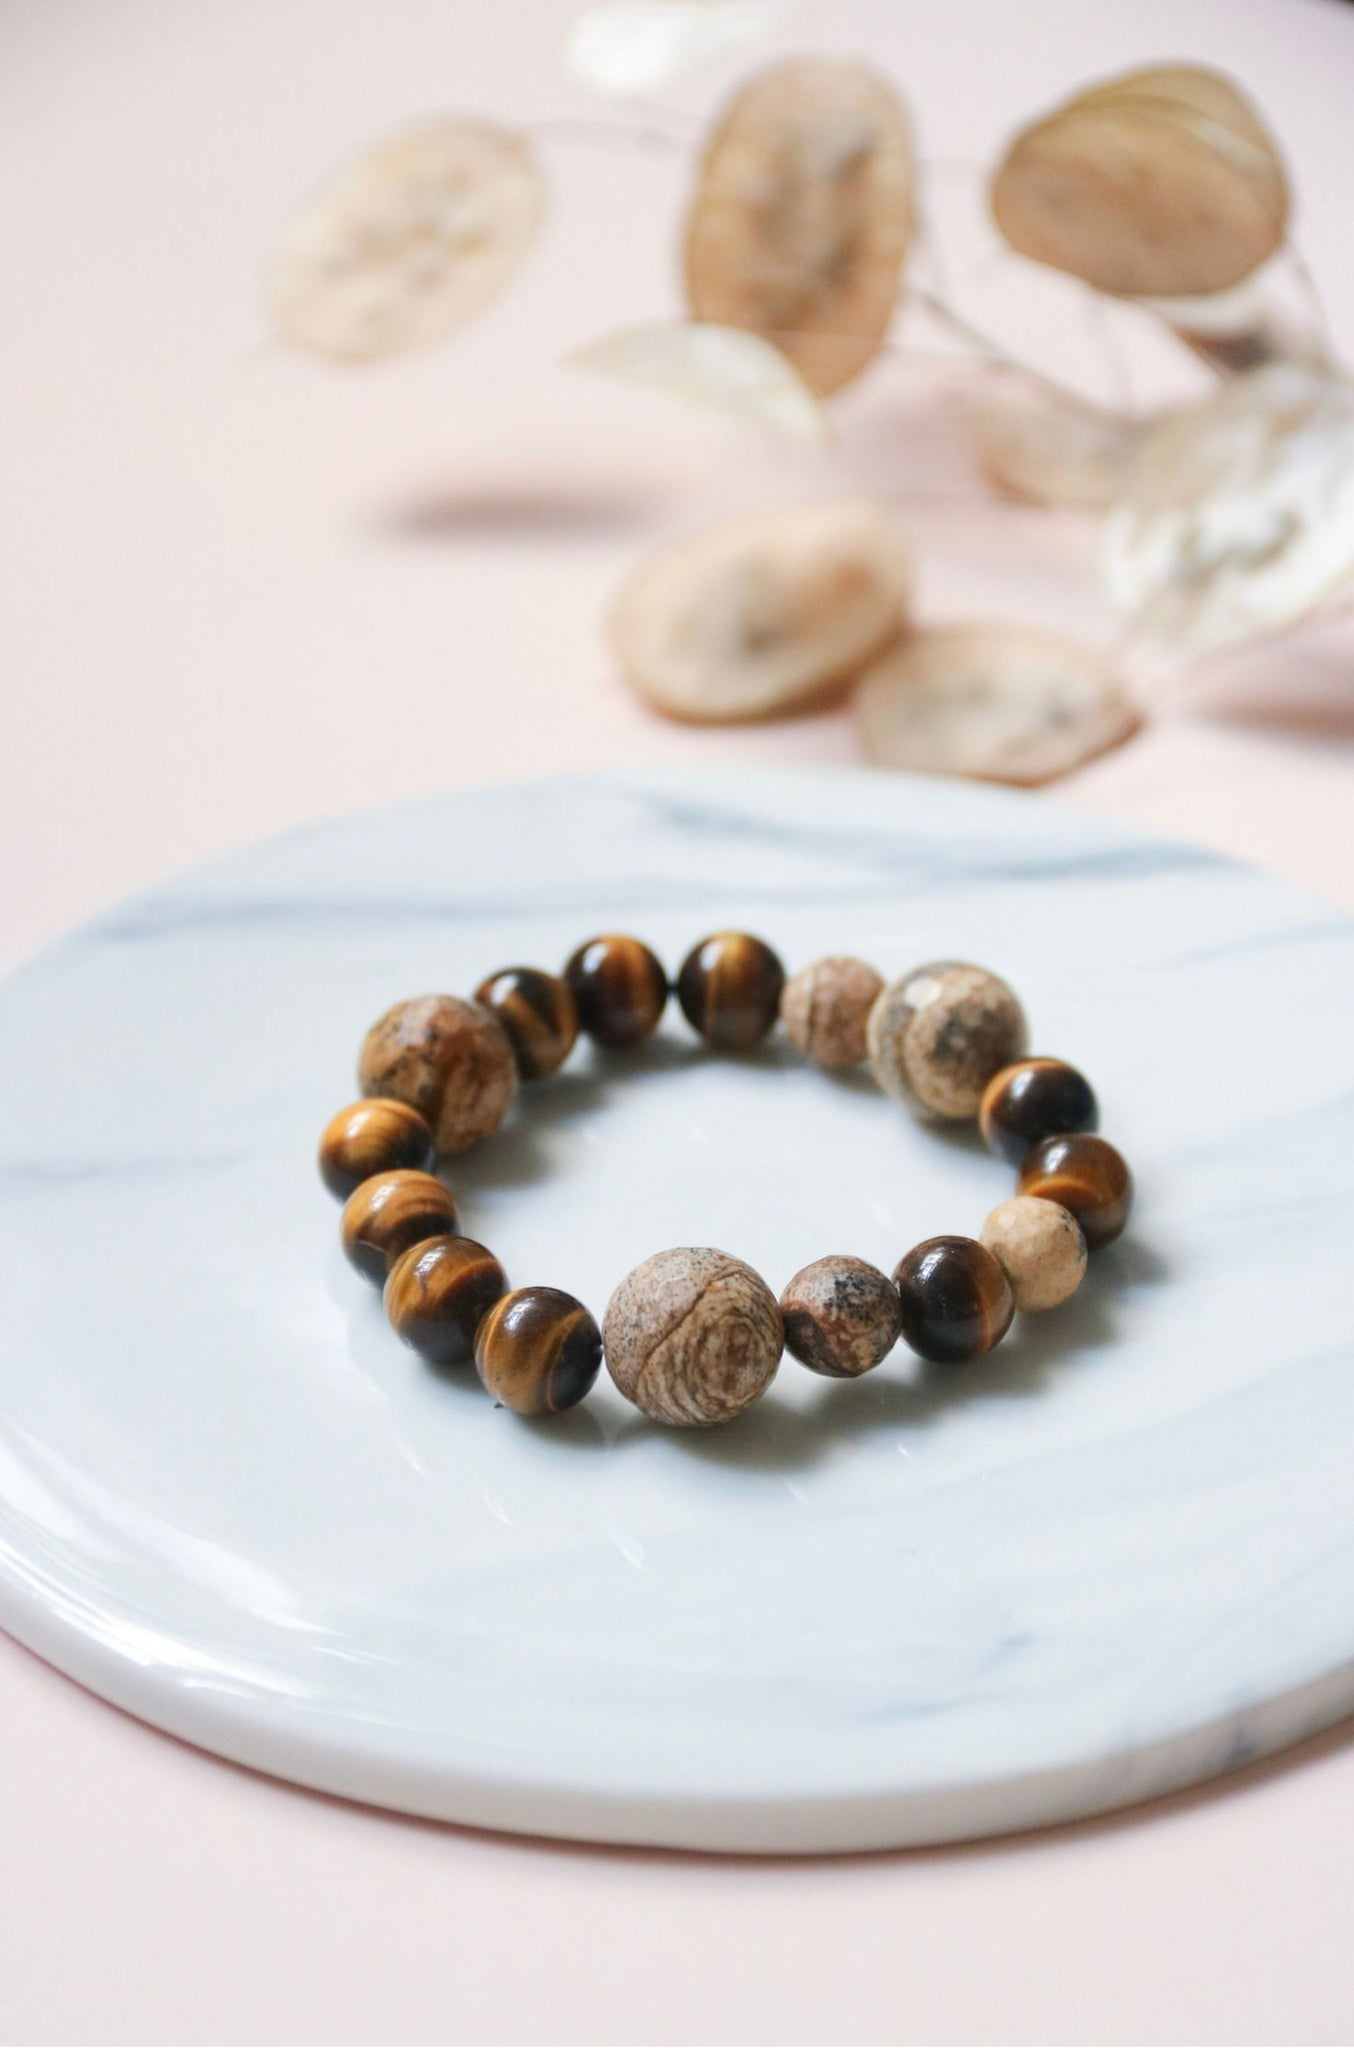 Tiger's Eye & Picture Jasper Bracelet | by X - helloflowerssg